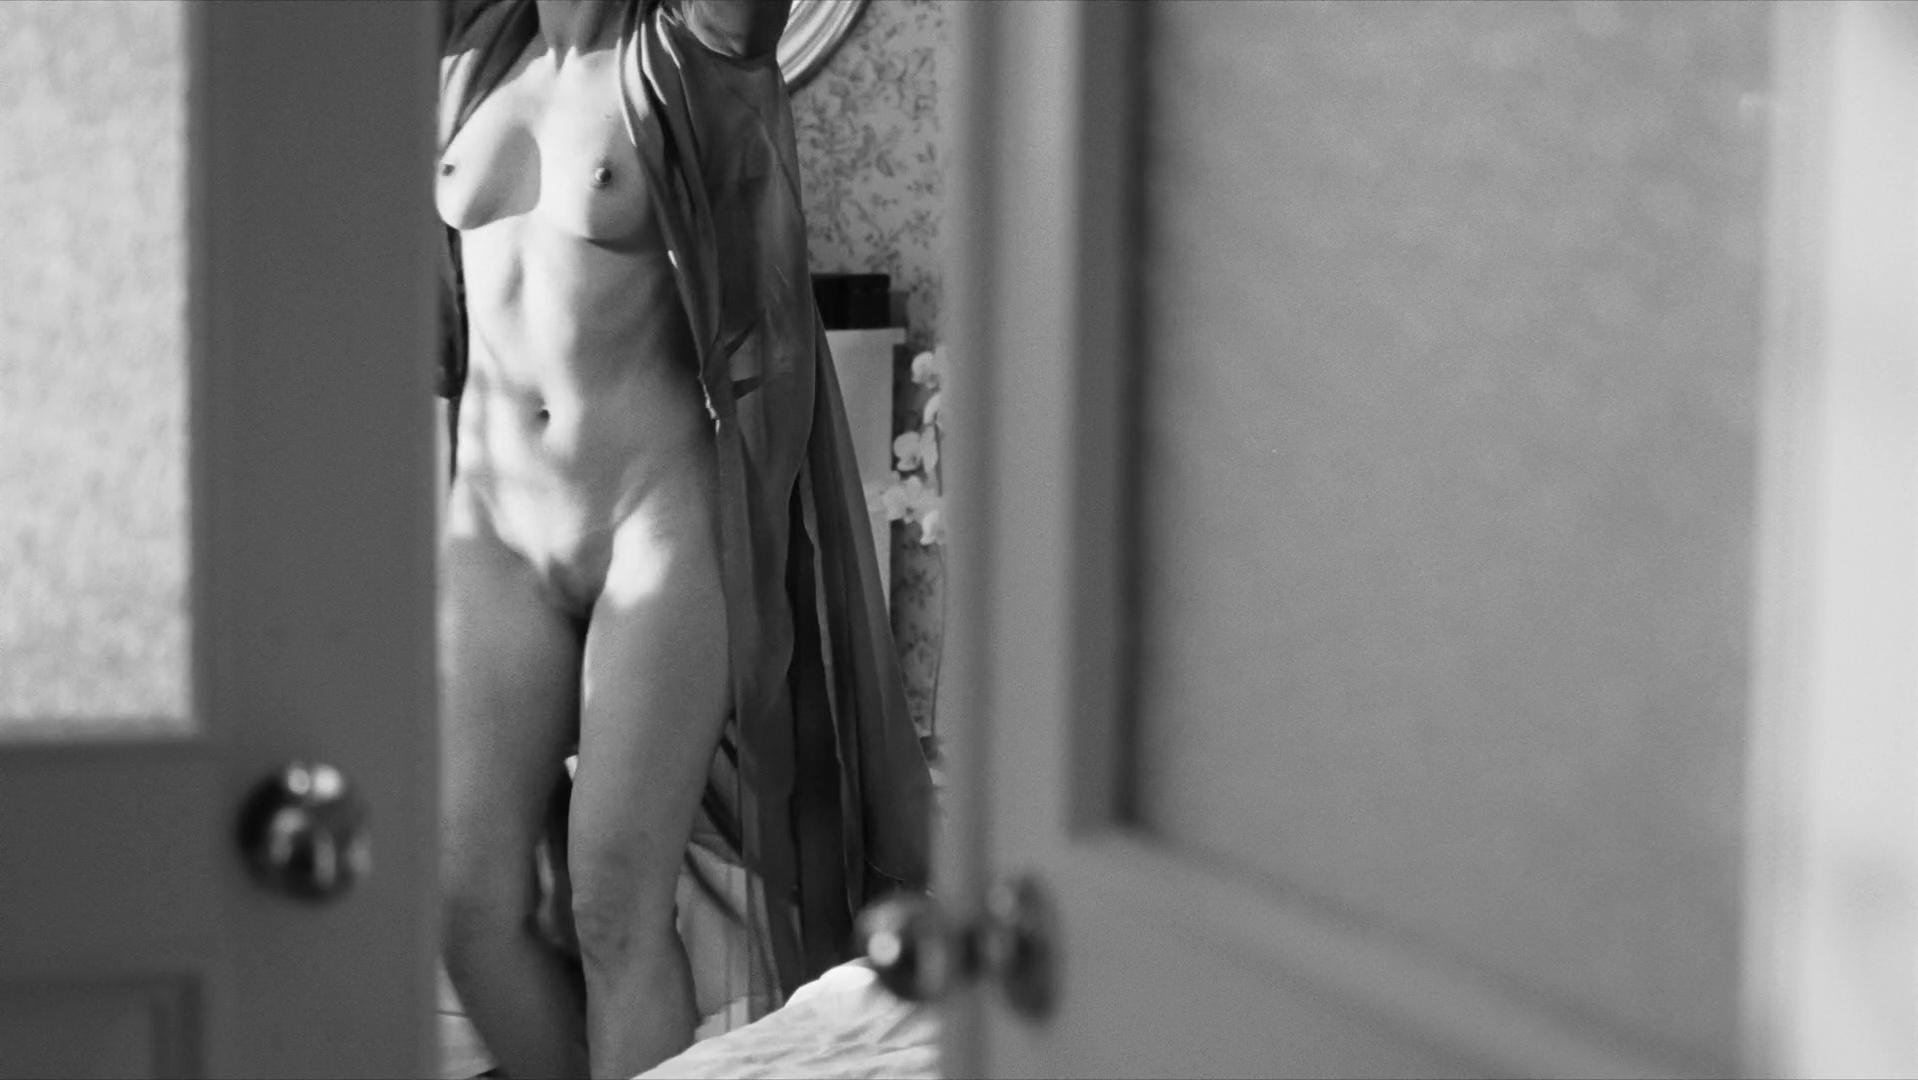 Yuliya Peresild nude - Weekend (2014)